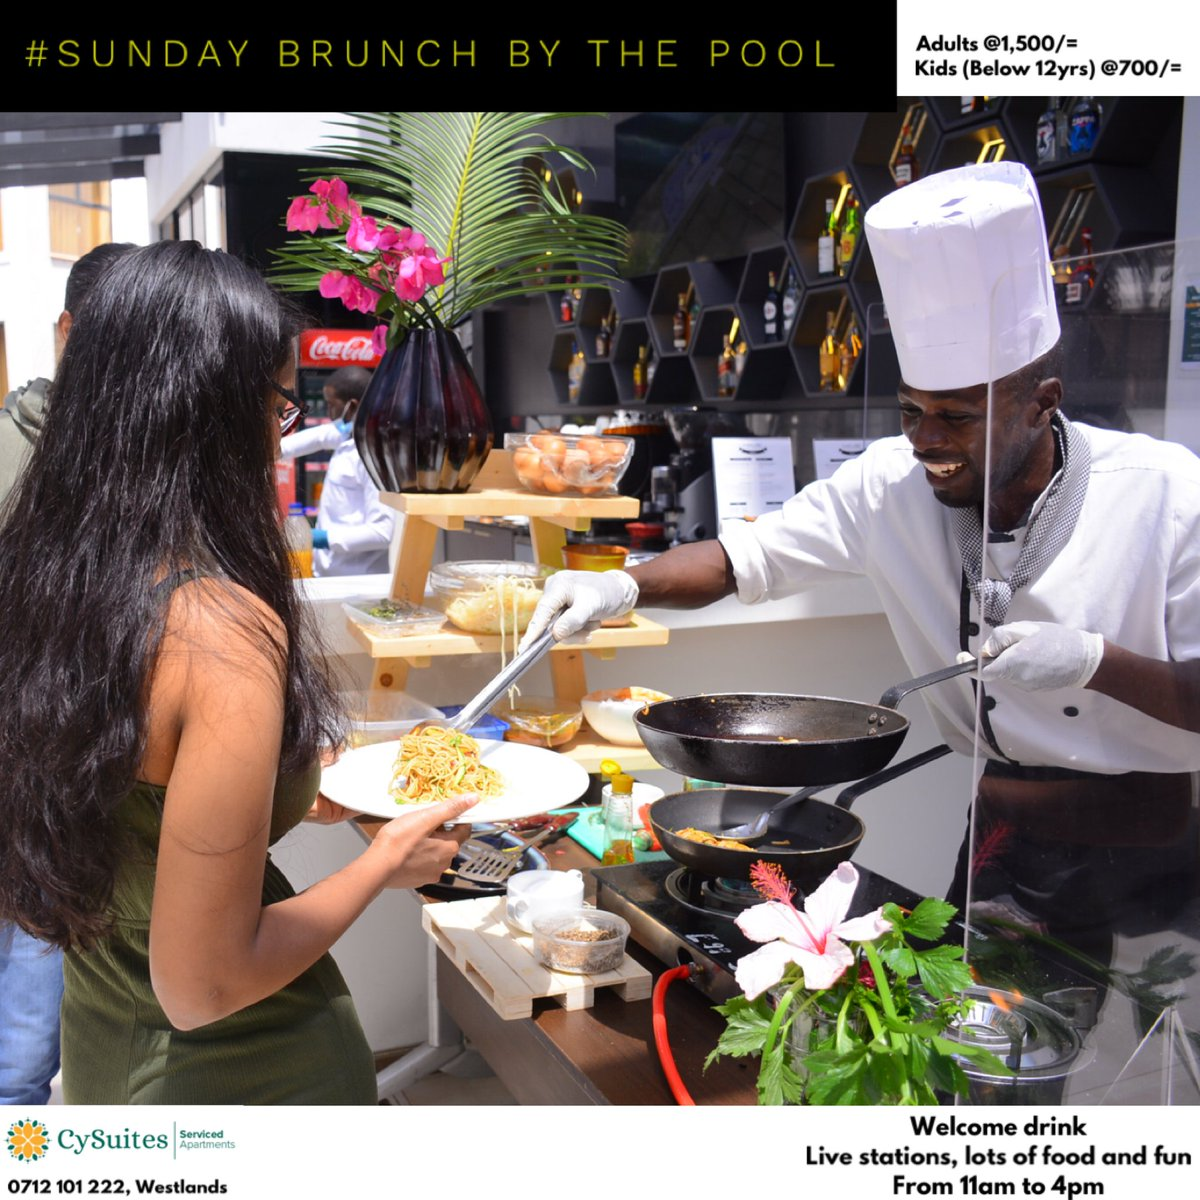 One more Sunday to go!   Call 0712 101 222 to enjoy our Sunday Brunch Offer @ 1,500/= for adults and 700/= for kids below 12yrs.   NB: Brunch charges are exclusive of swimming pool charges.  #cysuitessundaybrunch  #brunchinthecity #nairobifoodie #iamnairobian #sundayvibes